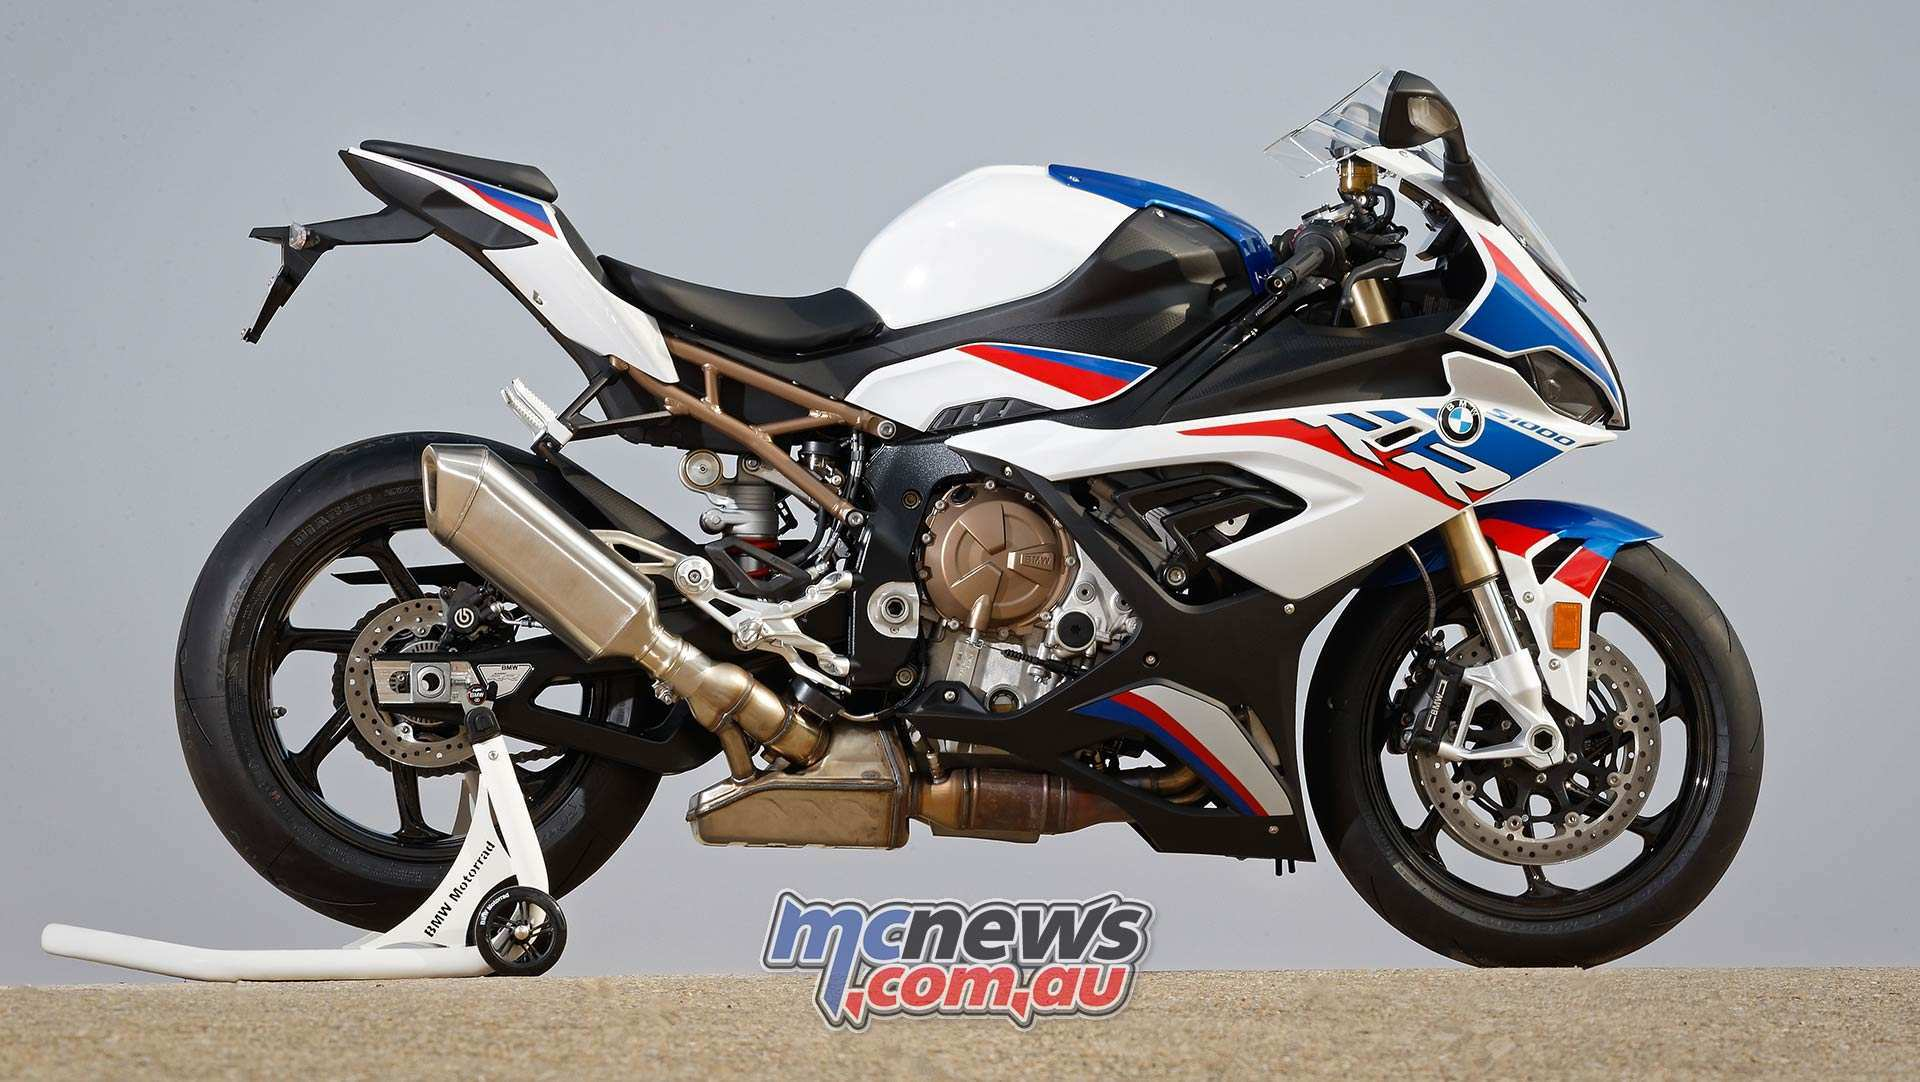 99 The Best 2019 BMW S1000Rr Release Date And Concept